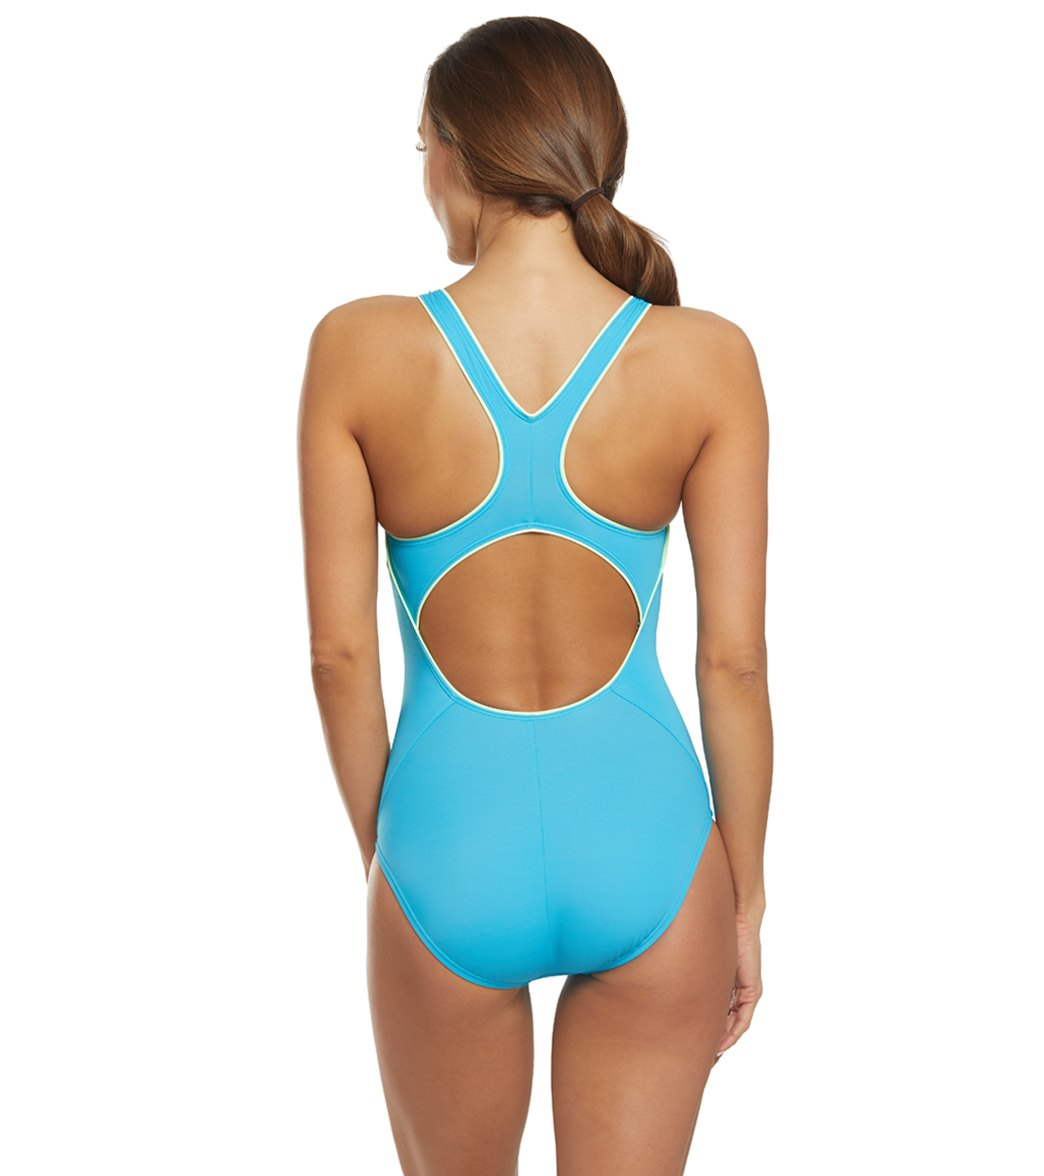 b7029d1bc663 Nike Women's Solid Powerback Chlorine Resistant One Piece Swimsuit at  SwimOutlet.com - Free Shipping